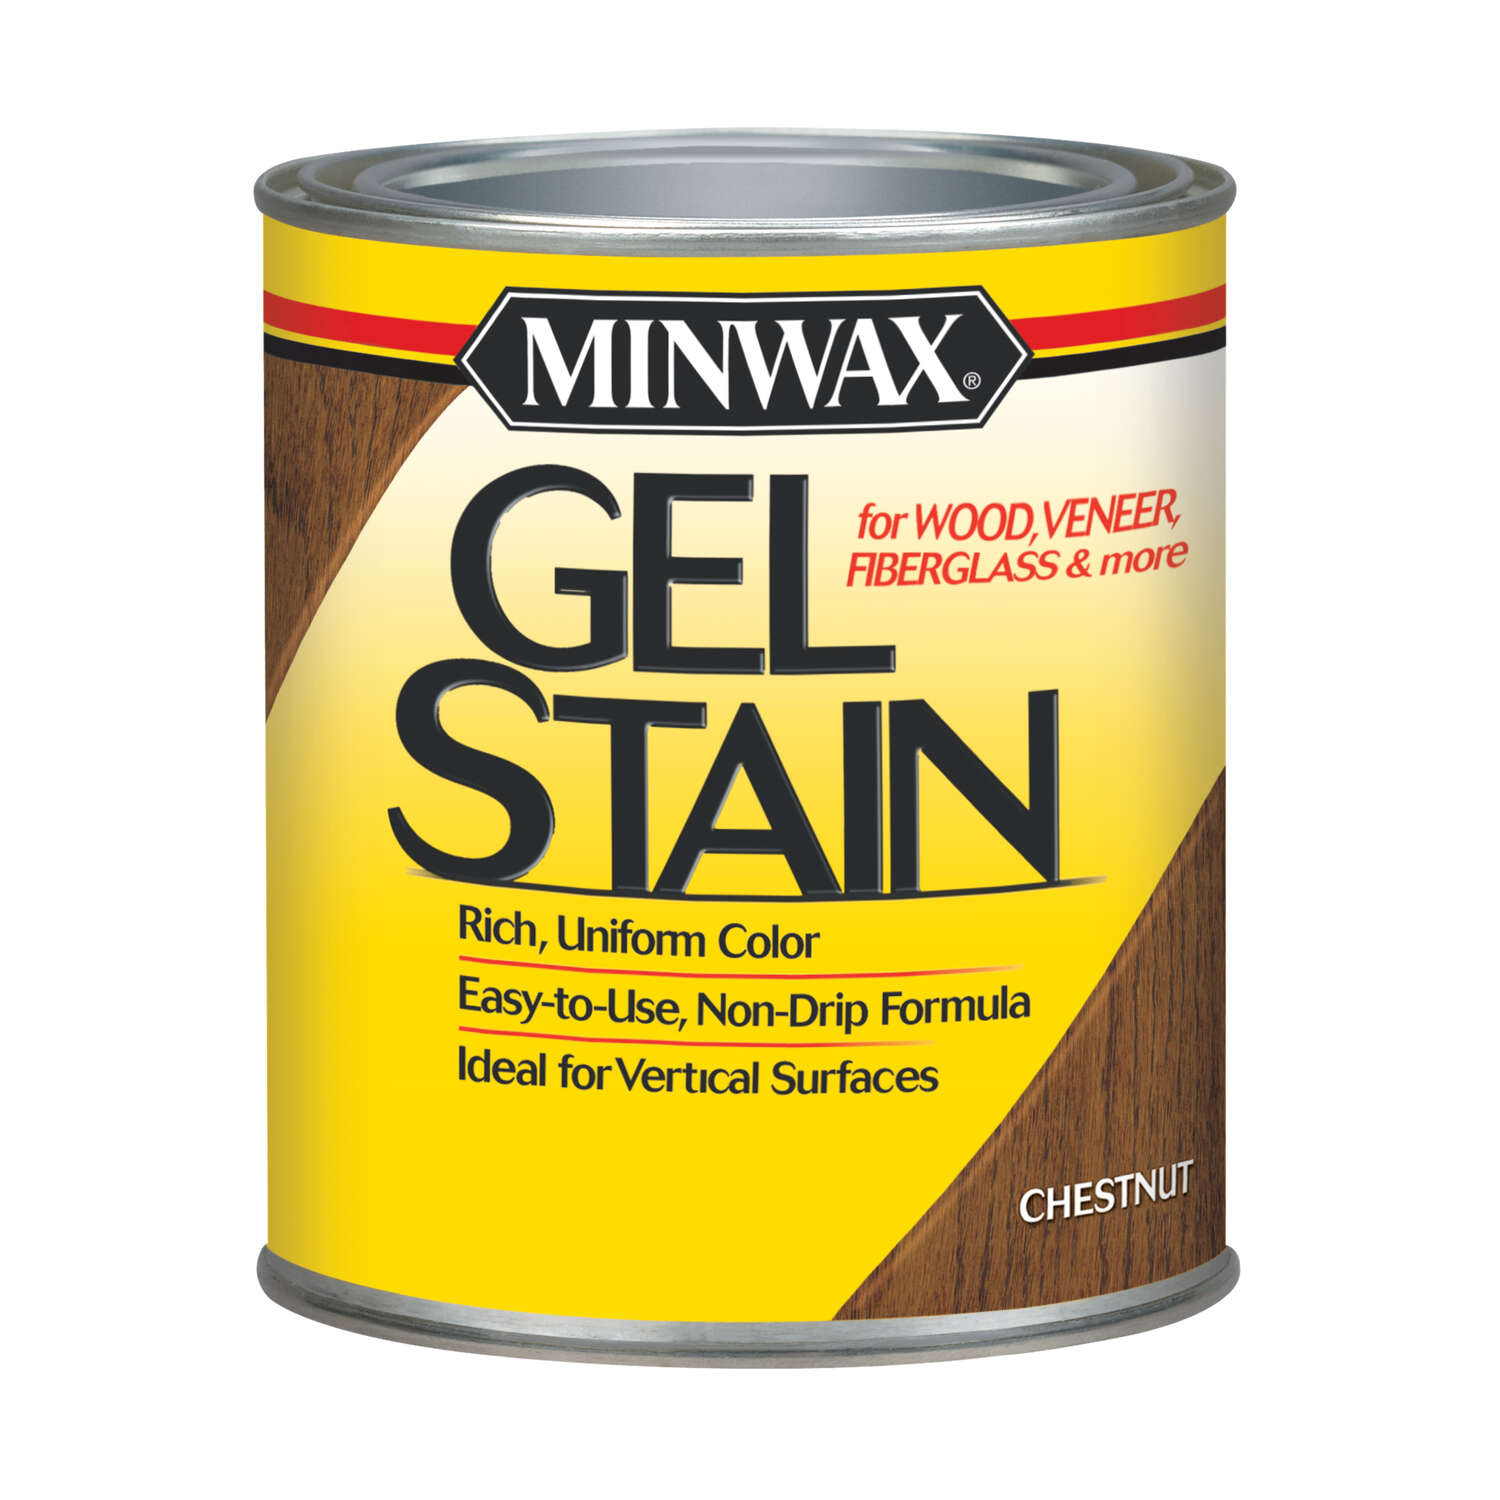 Minwax  Wood Finish  Transparent  Low Luster  Chestnut  Oil-Based  Gel Stain  1 qt.